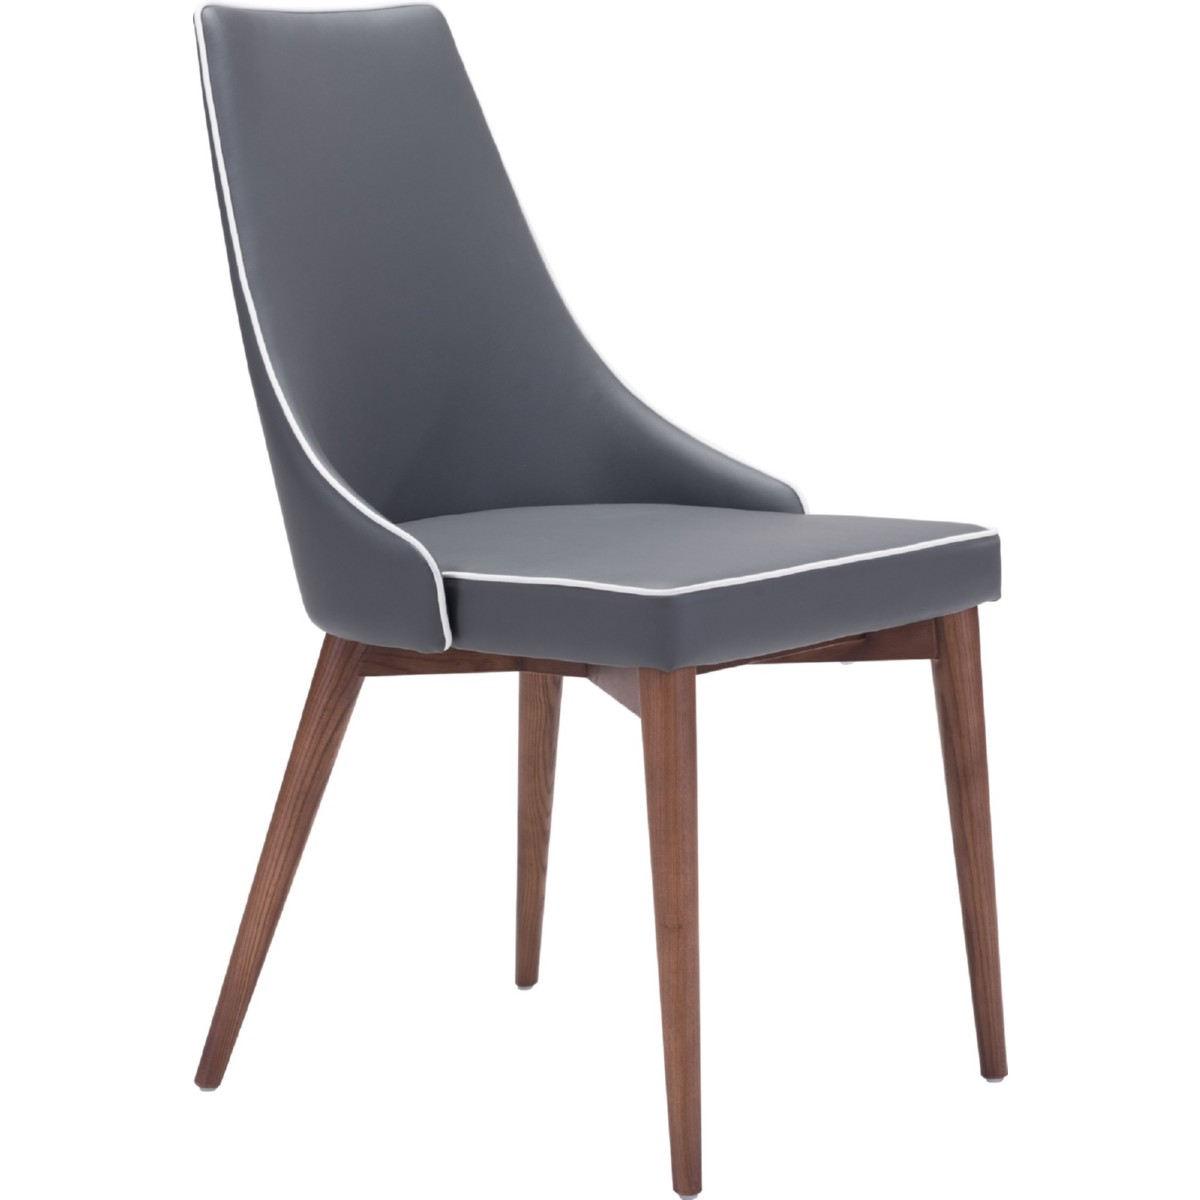 Zuo 100278 Moor Dining Chair In Dark Gray Leatherette W